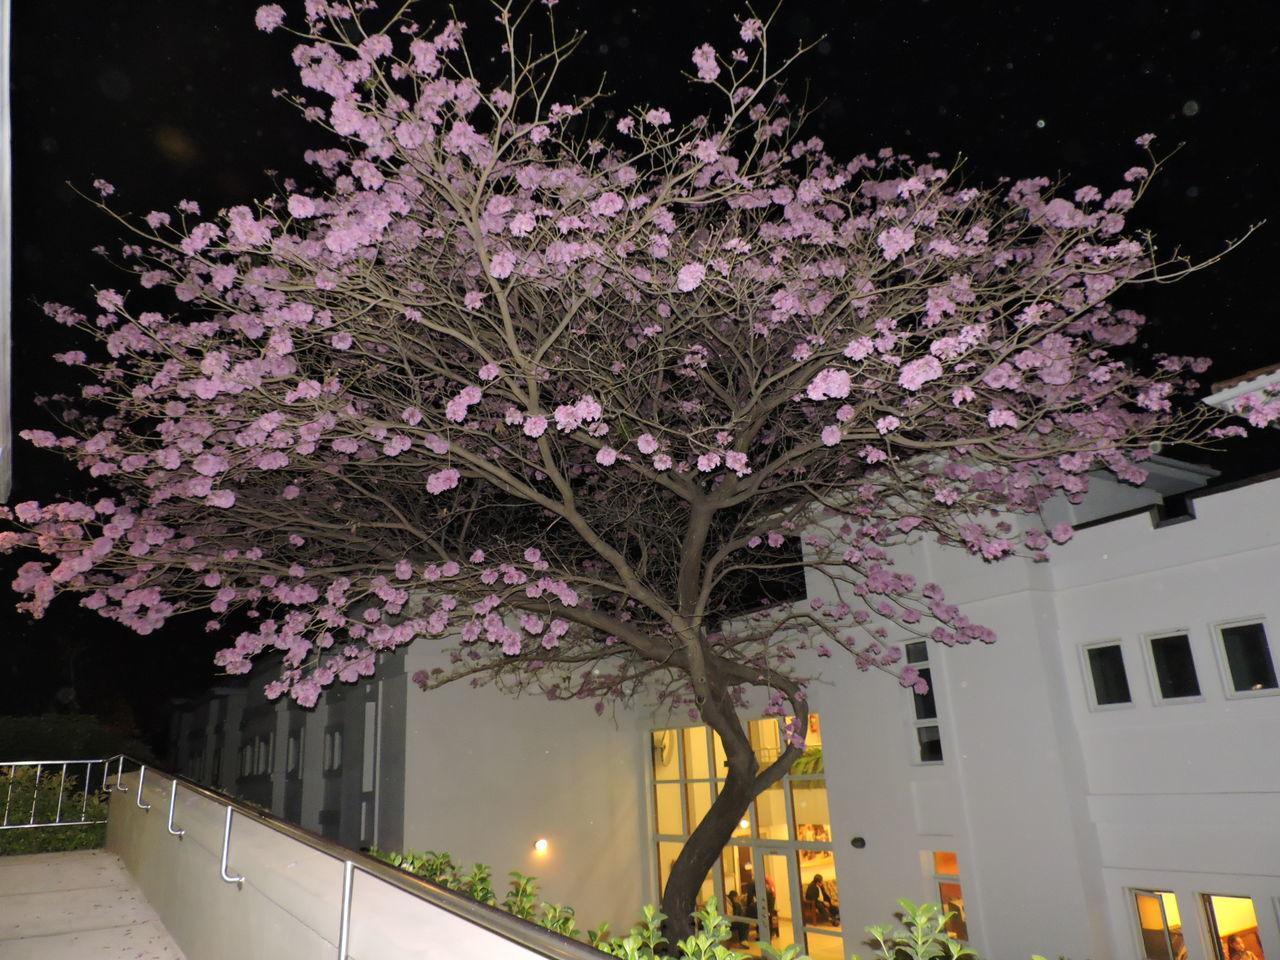 flower, built structure, building exterior, tree, architecture, nature, blossom, night, no people, growth, springtime, outdoors, beauty in nature, illuminated, branch, fragility, sky, freshness, city